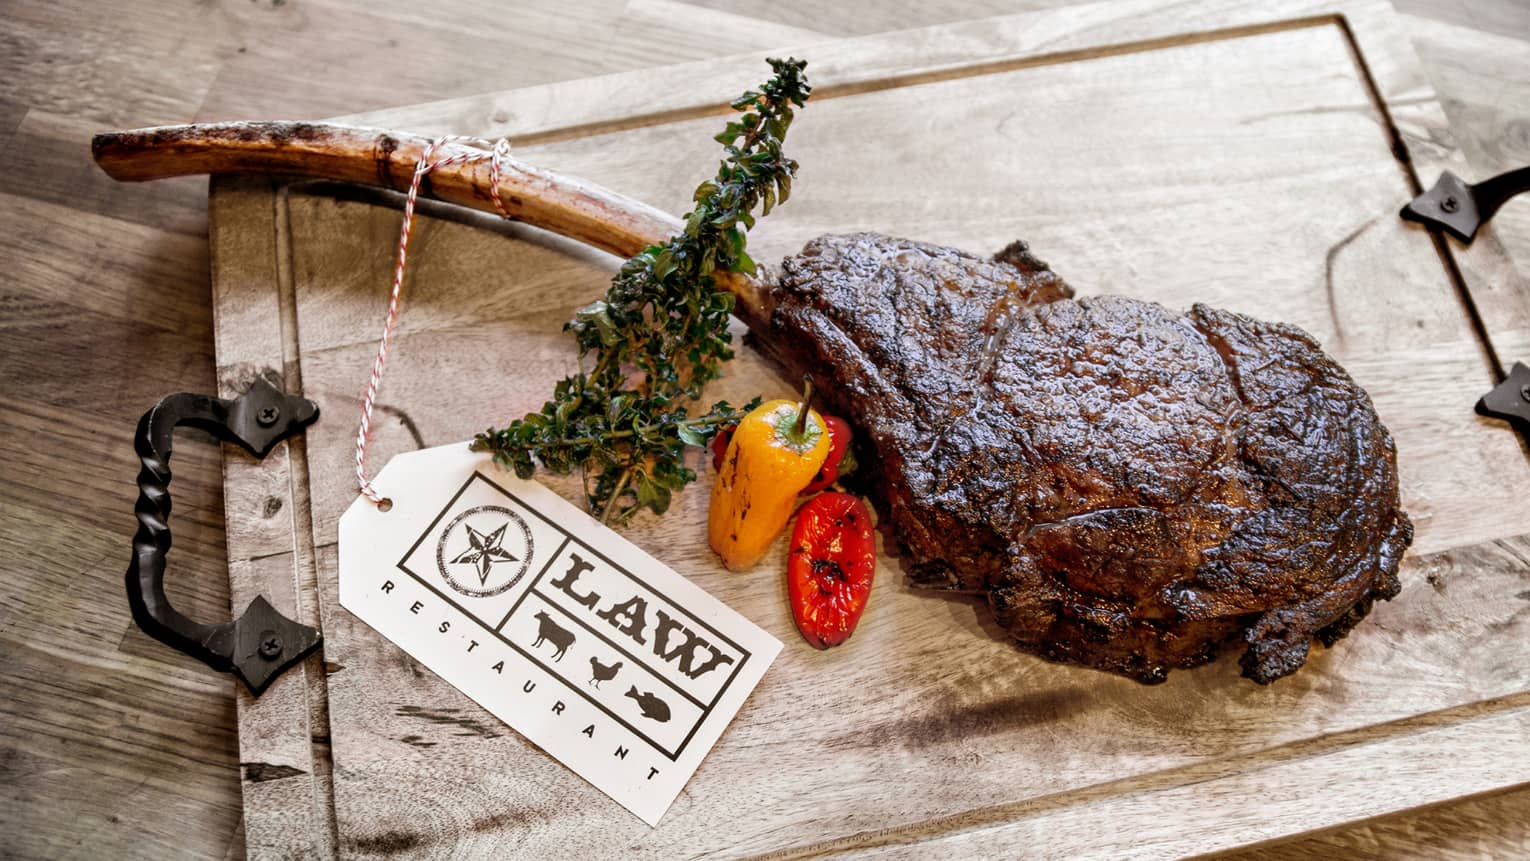 Forty-eight ounce, Long-Bone Tomahawk steak chop on wood platter with roasted peppers, sign